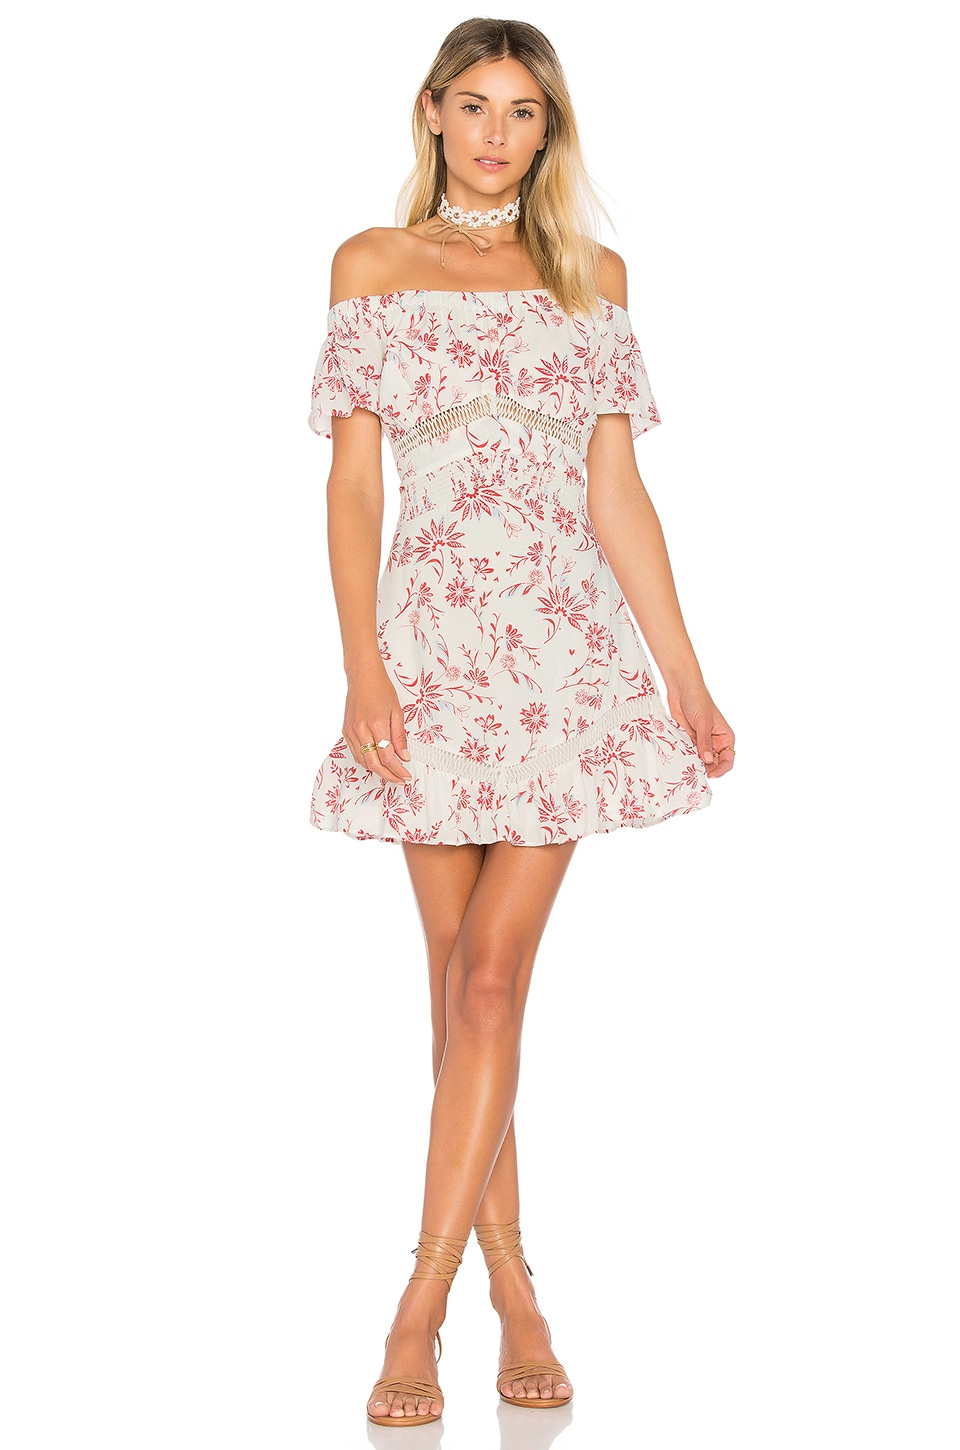 ale by alessandra x REVOLVE Rita Mini Dress in Poppy Floral